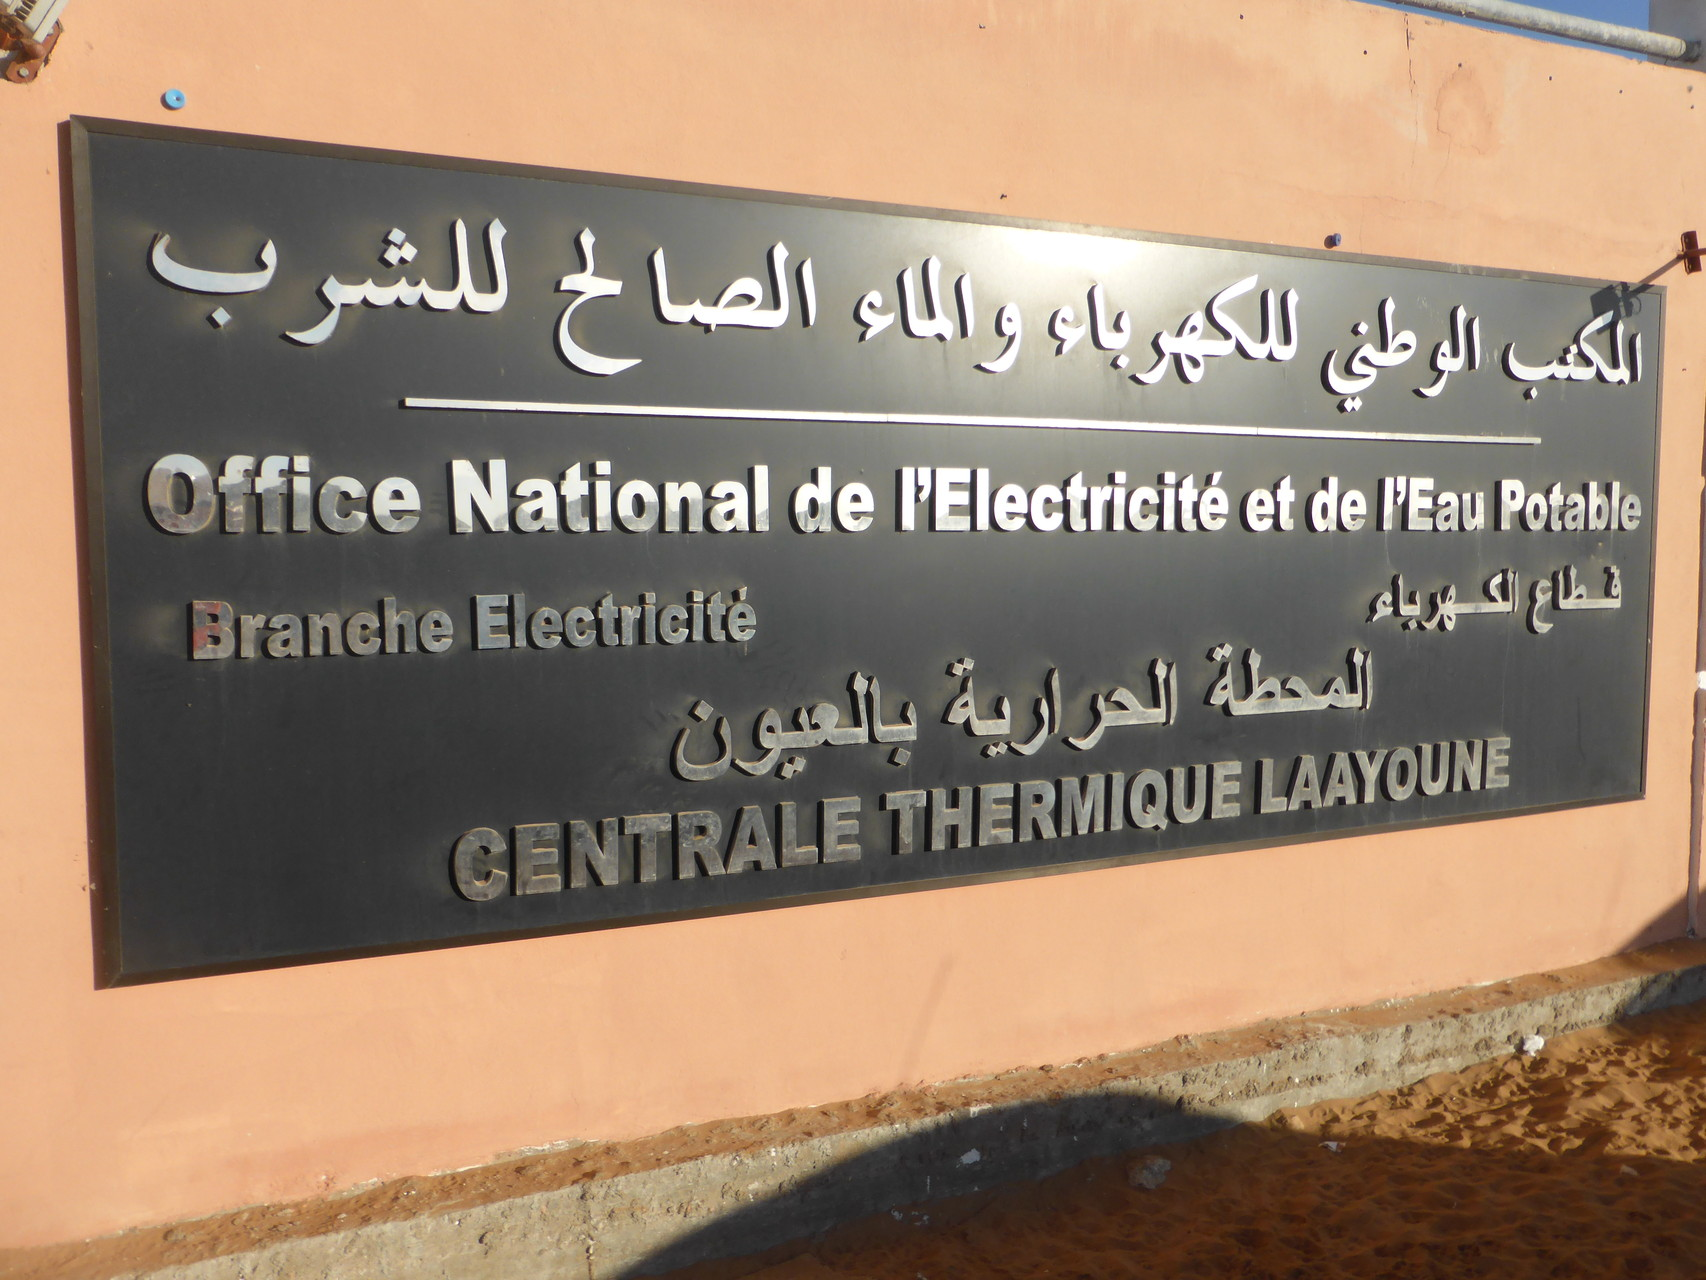 2015            Diesel Power Plant Maroc/West Sahara - Laayoune